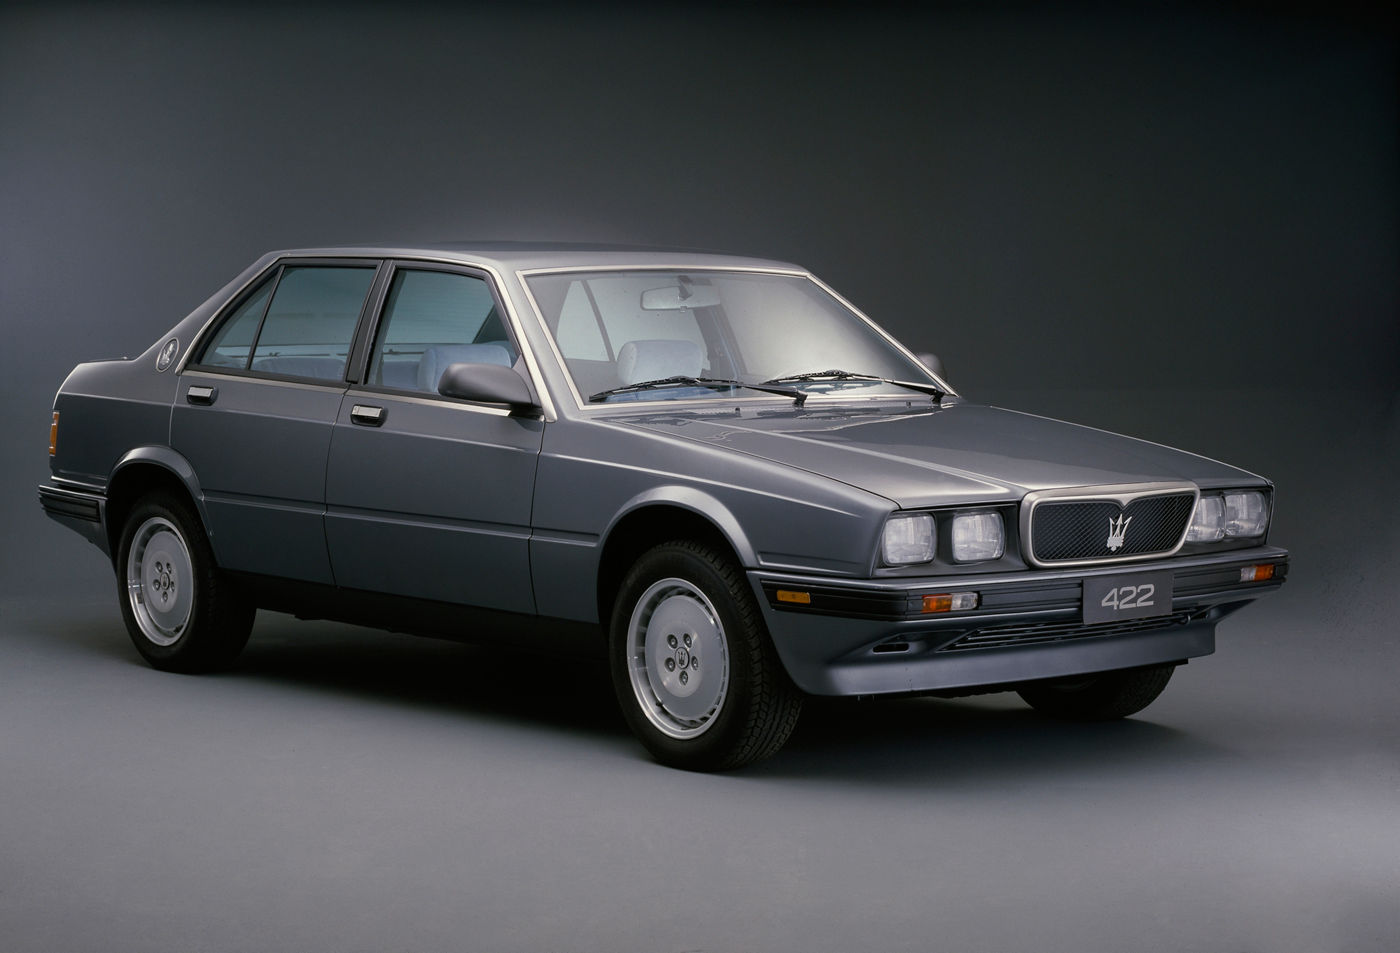 1988 Maserati 422 - Biturbo - classic car model overview